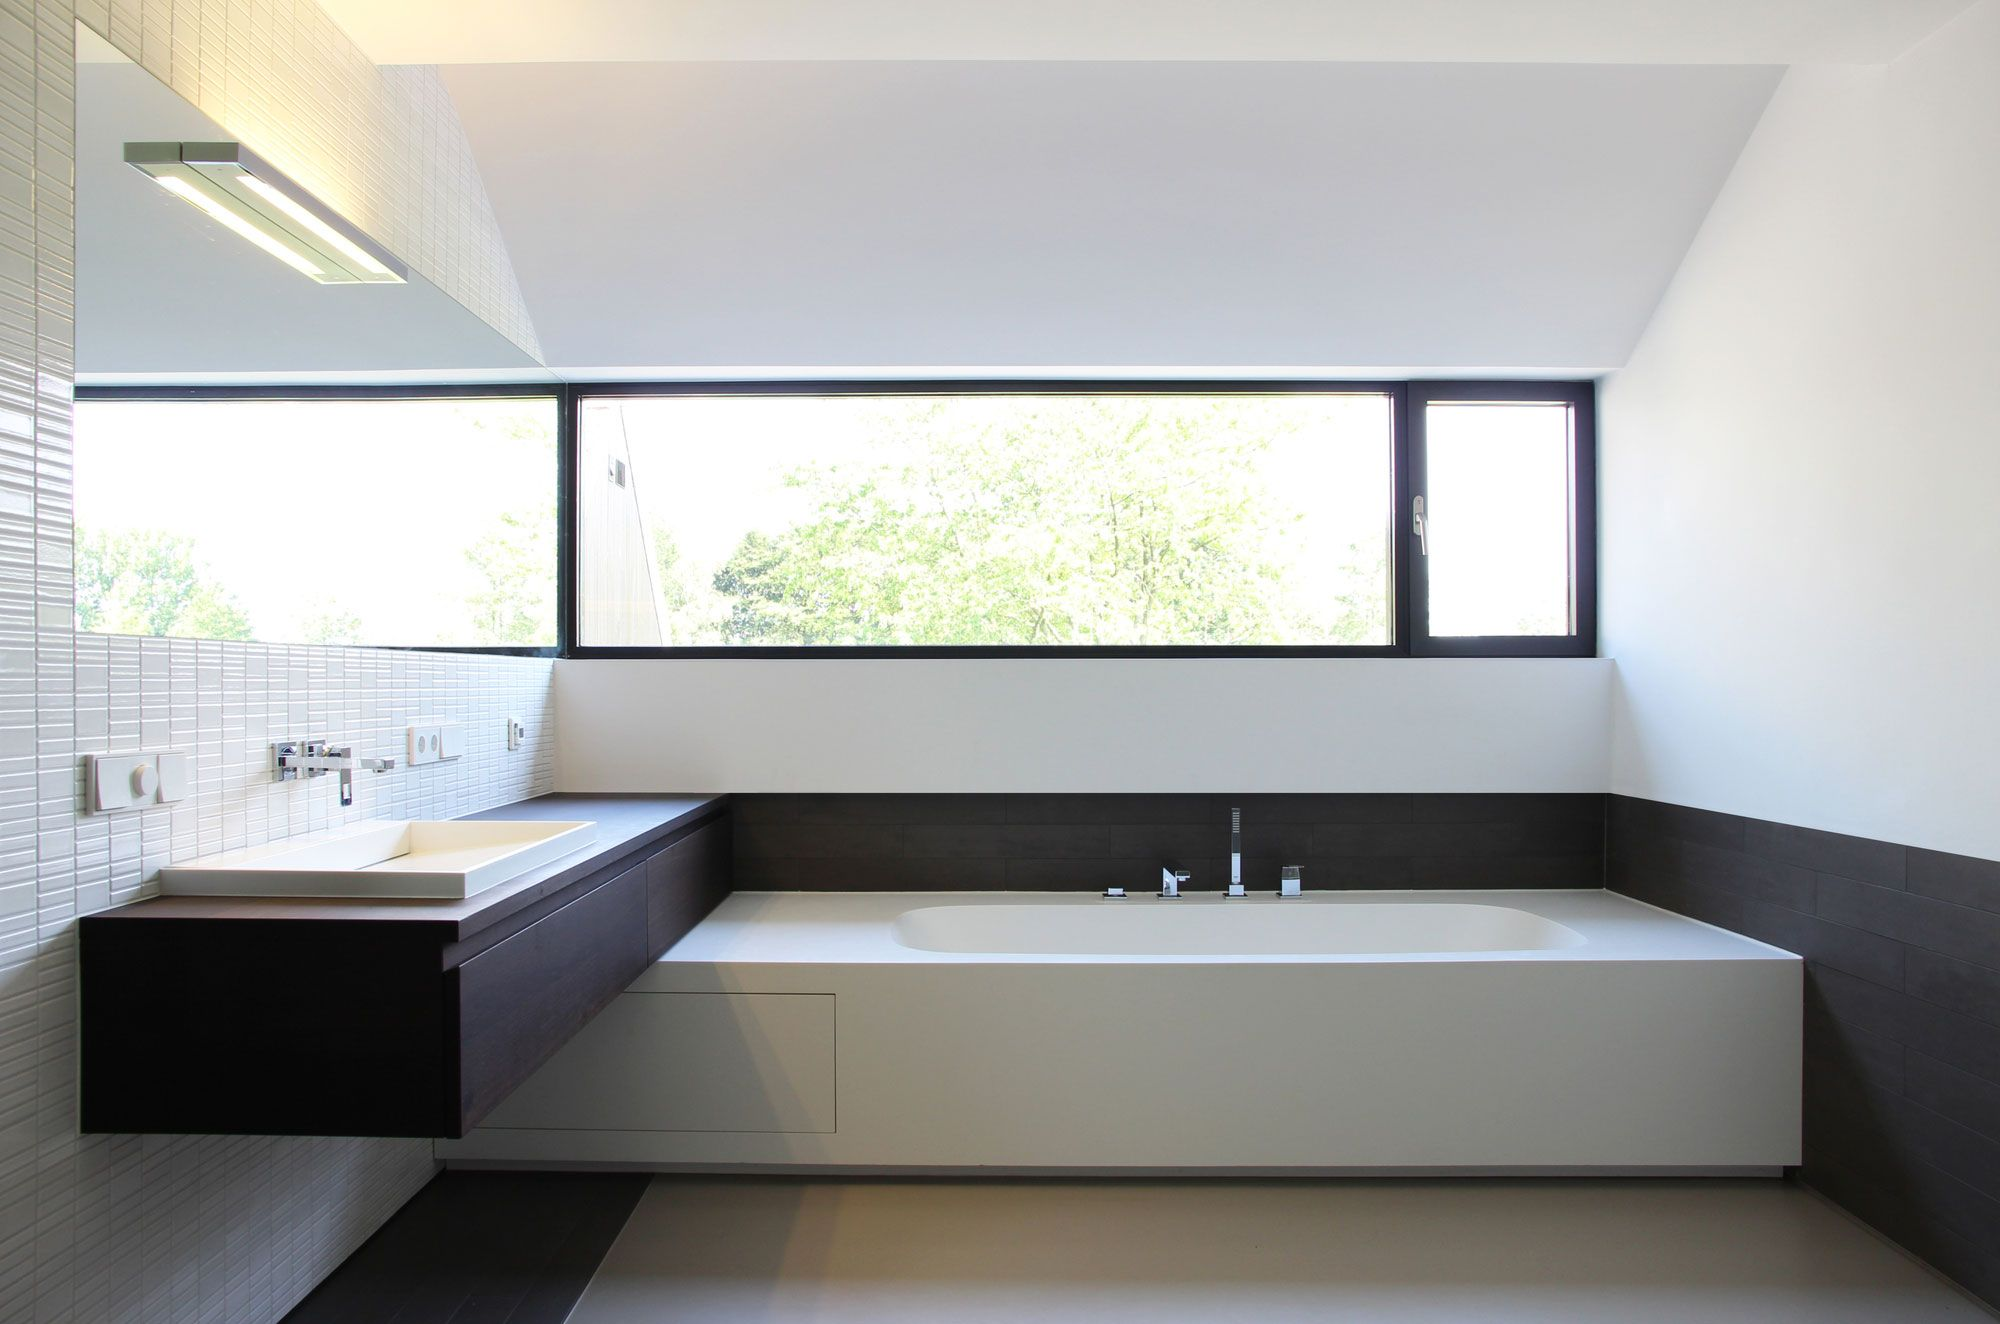 Interior aspect of a rebuilt farm house in Goes, The Netherlands by Grasso den Ridder Architecten